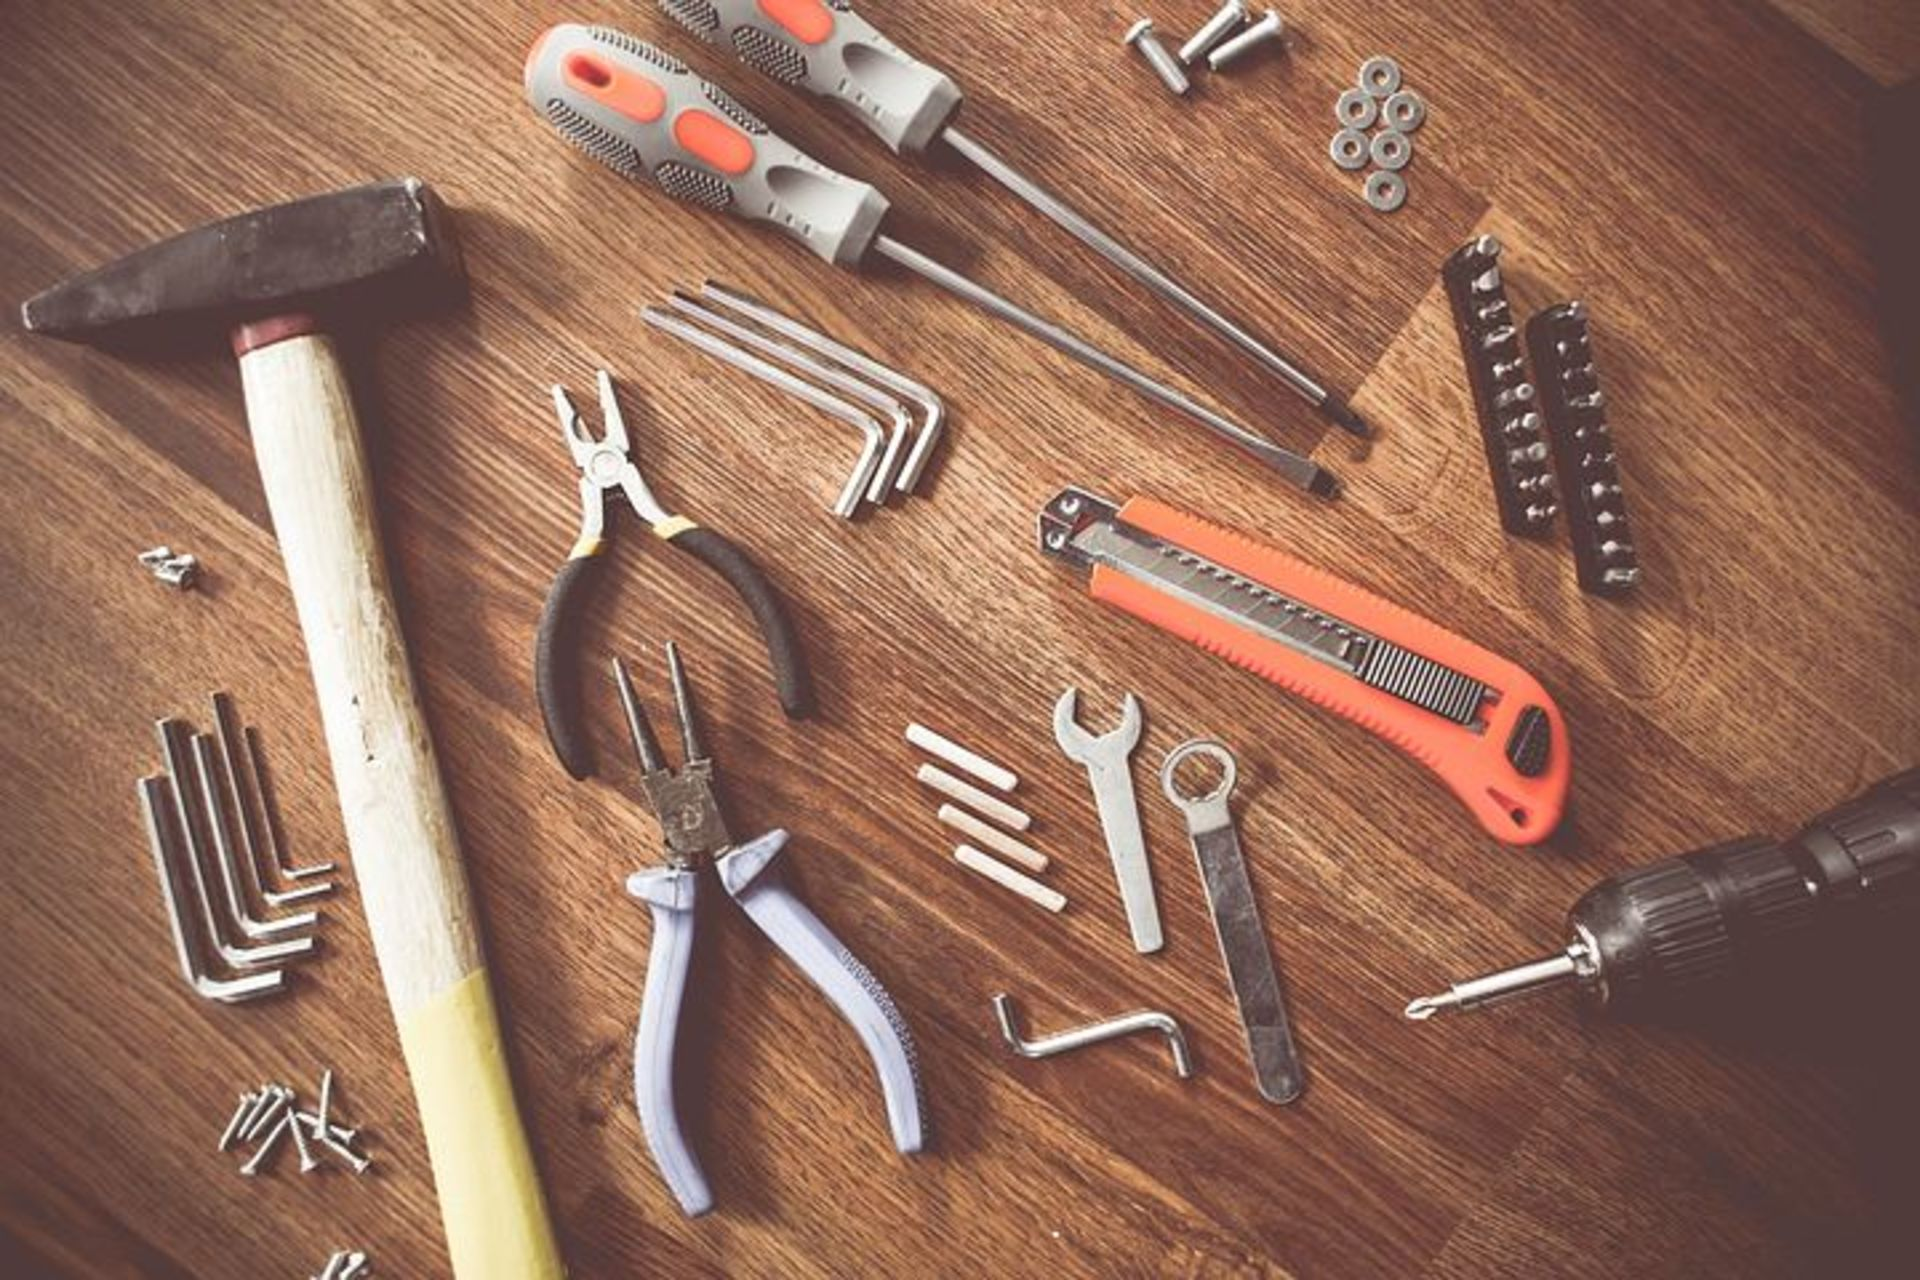 Top Tools for Homeowners